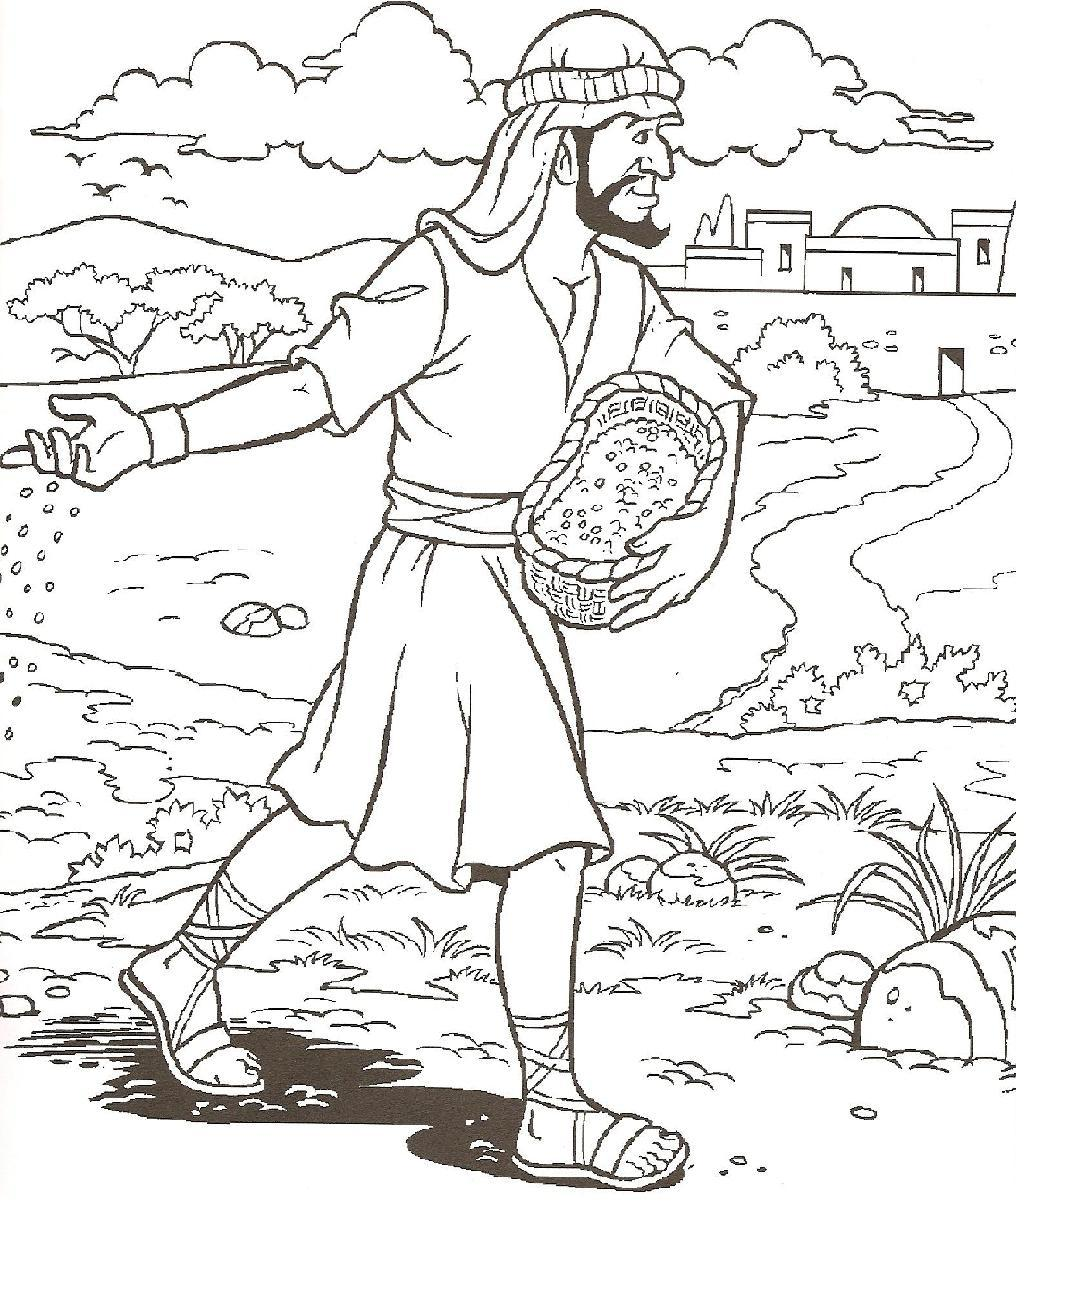 1000+ images about Parable of the Sower on Pinterest